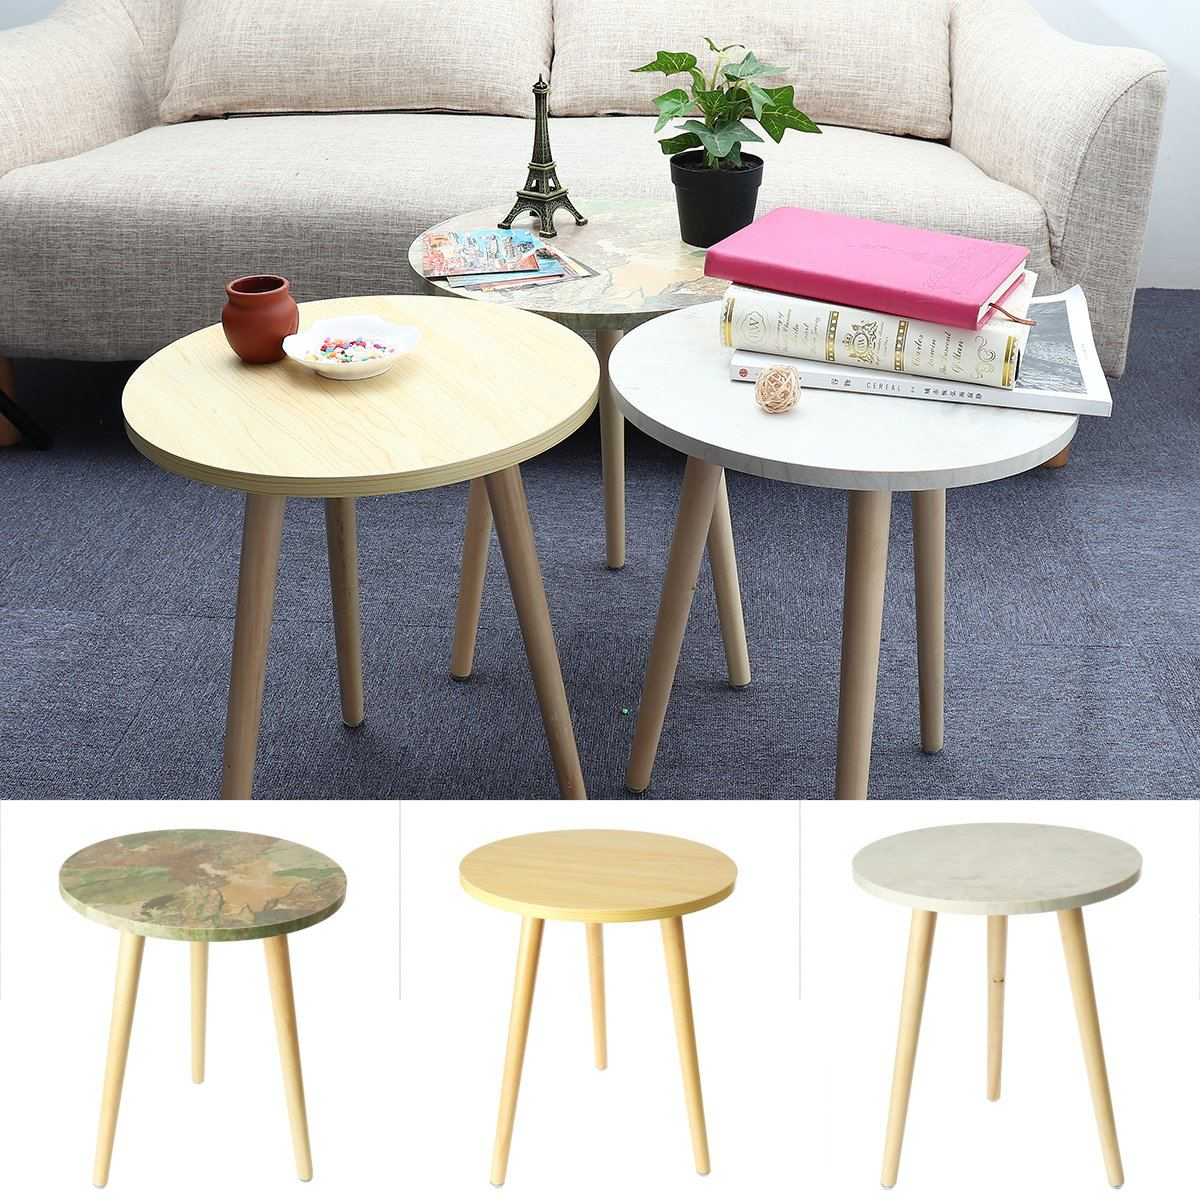 Decoration Sofa Tea-Tables Living-Room Circular Mini Nordic Fashion 3-Colors Practical